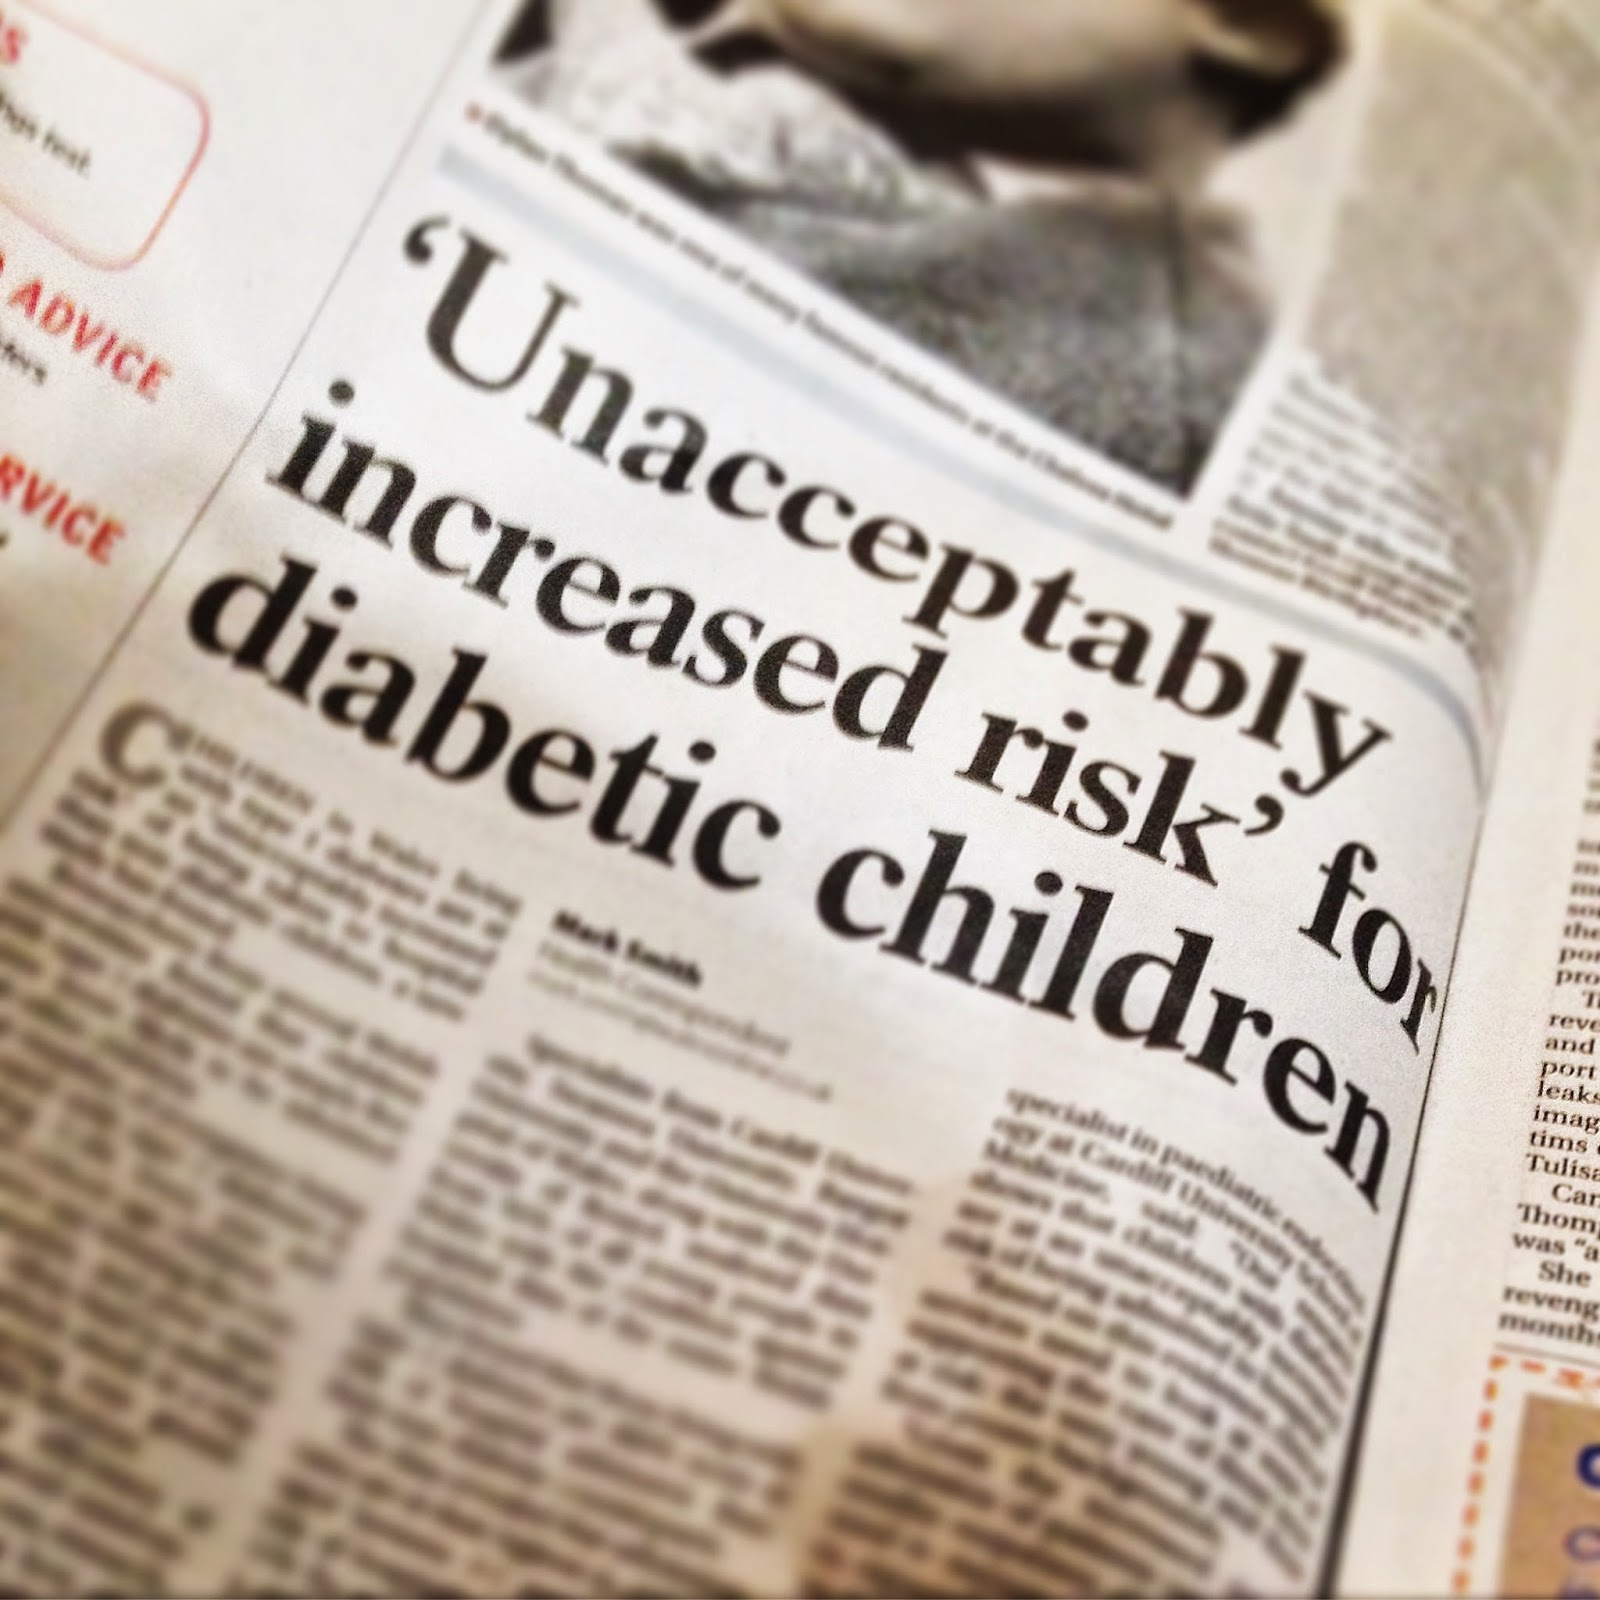 bbc radio wales newspaper review life sport and diabetes an and the response on twitter about the diabetes story was really inspiring and i hope to have the opportunity to do another newspaper review again soon